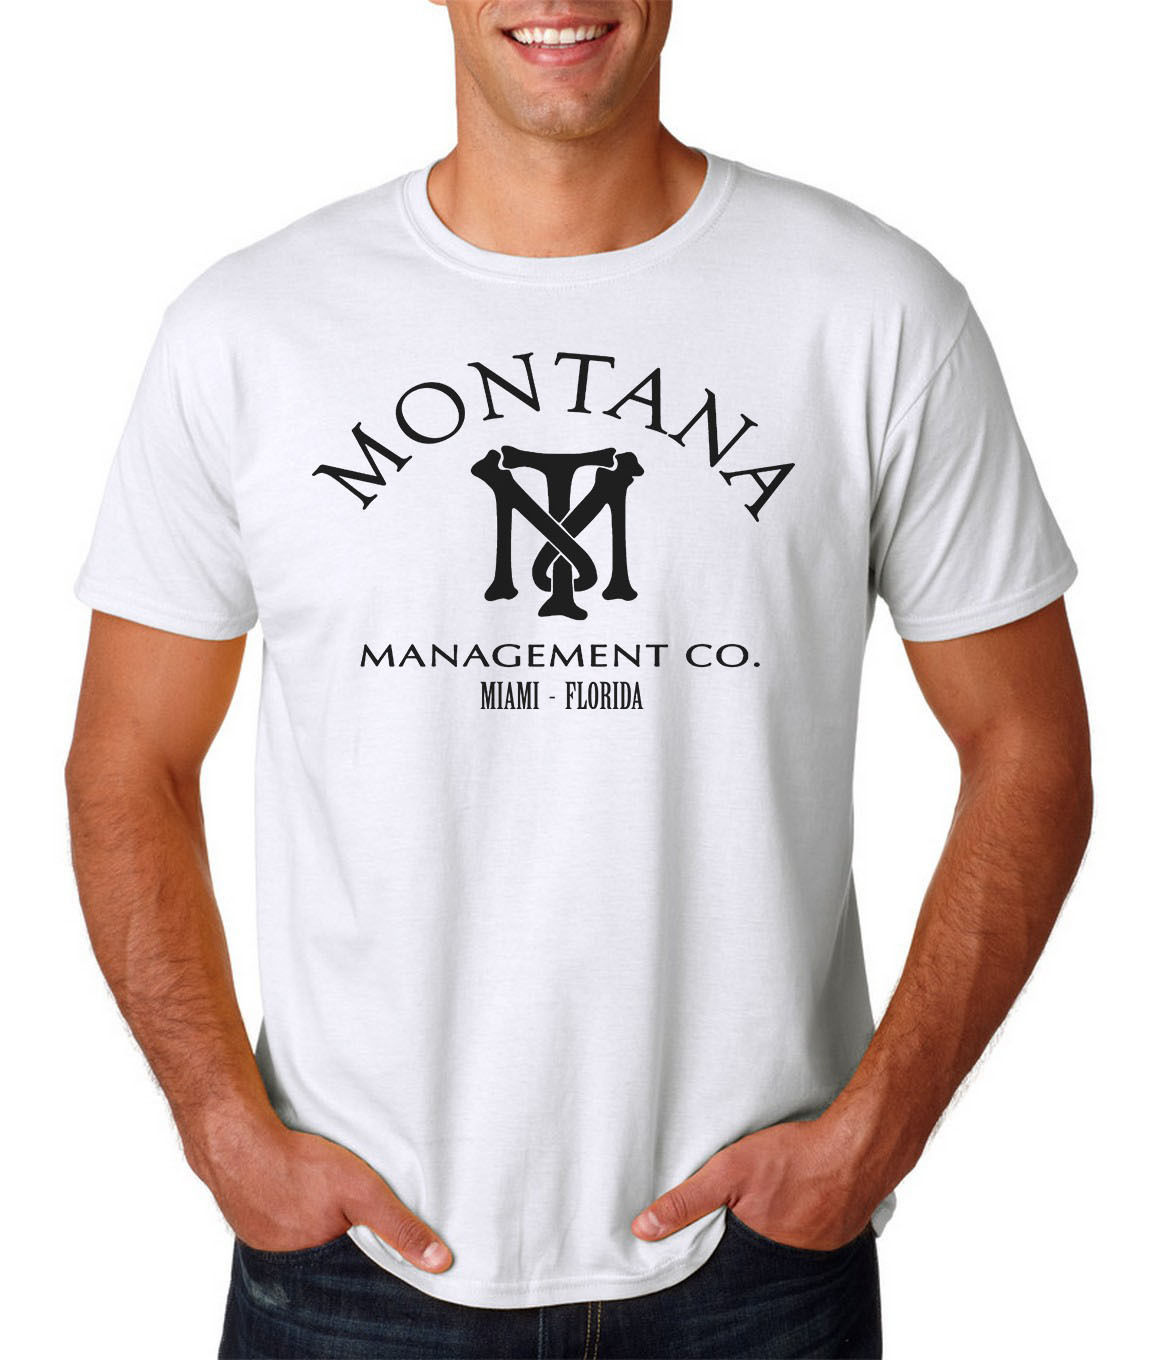 2019 Fashion Montana Management Co. T-shirt - Scarface - The World Is Yours Tony Gangster Mob 2017 Fashion Short Sleeve Black T Shirt Wide Varieties